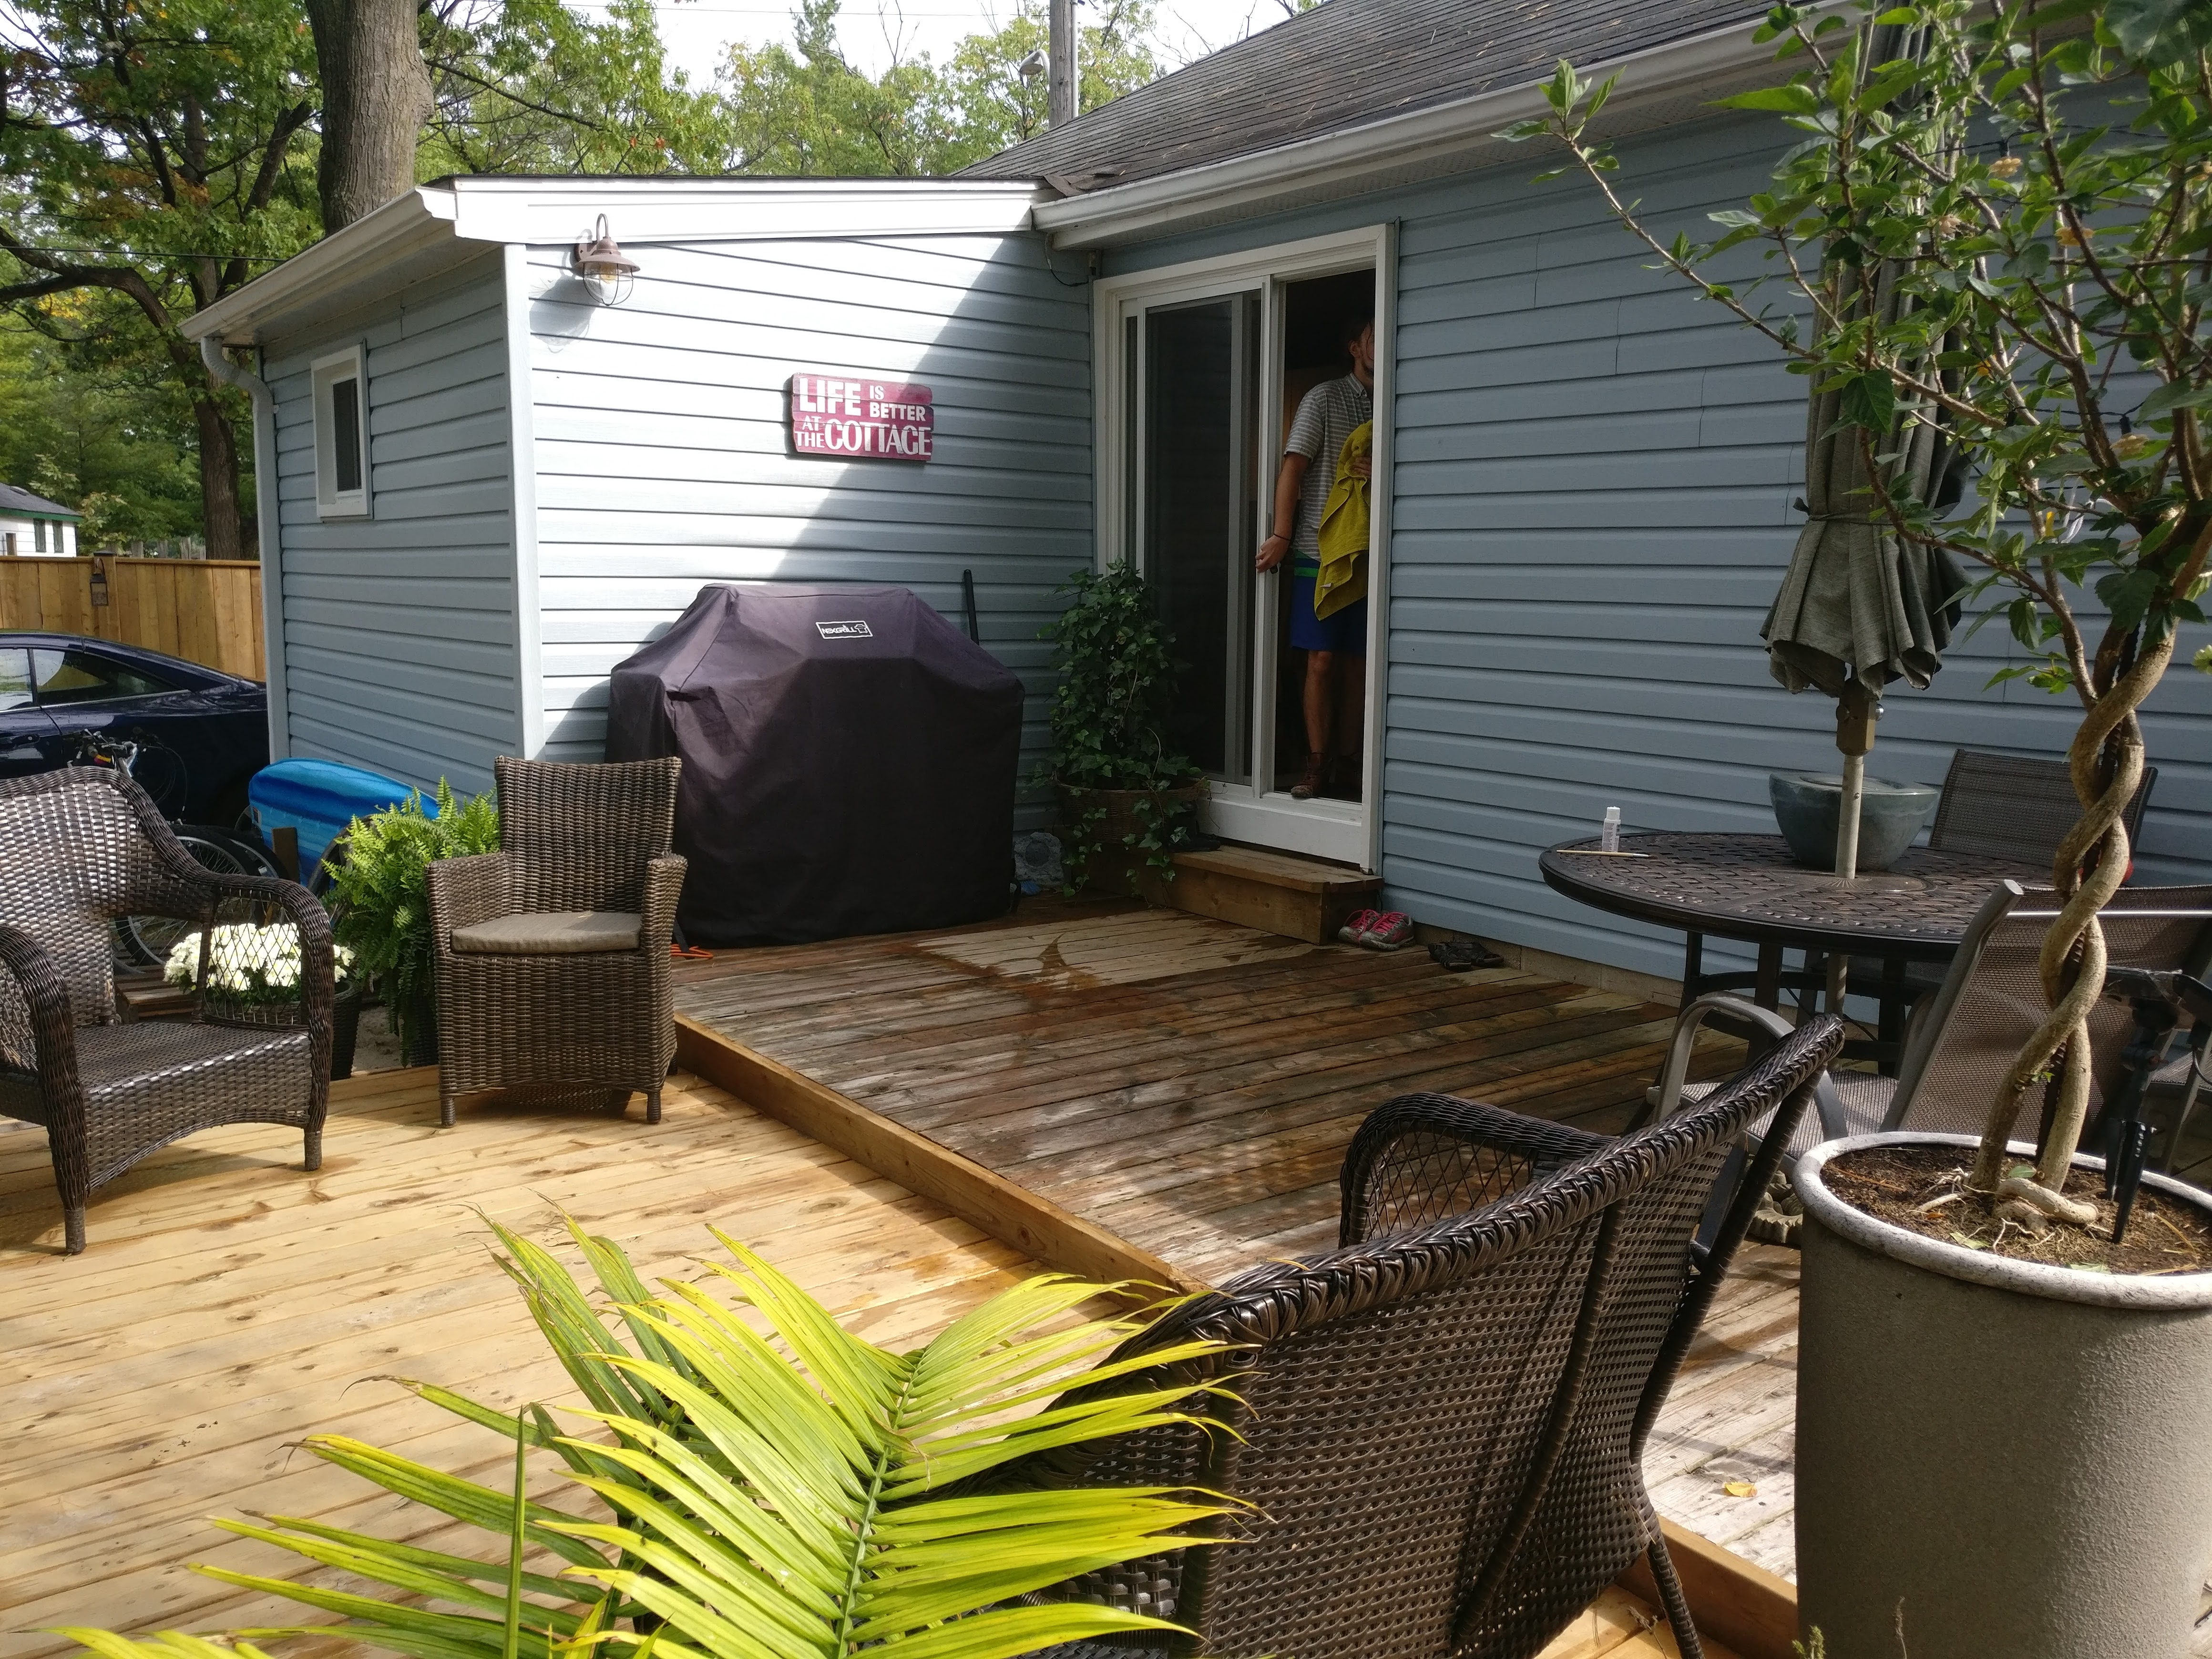 mosley listings img rentals old wasaga cottages street ontario cottage beach